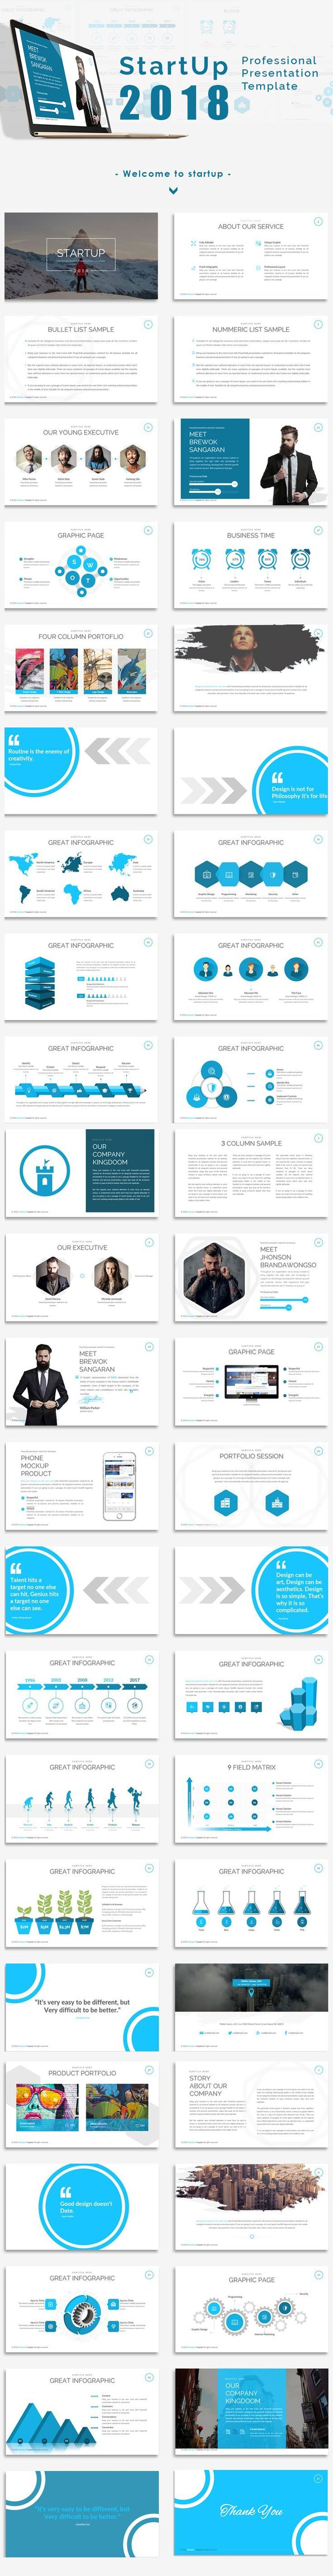 start up 2018 presentation powerpoint template powerpoint keynote presentation templates pinterest template powerpoint themes and proposal